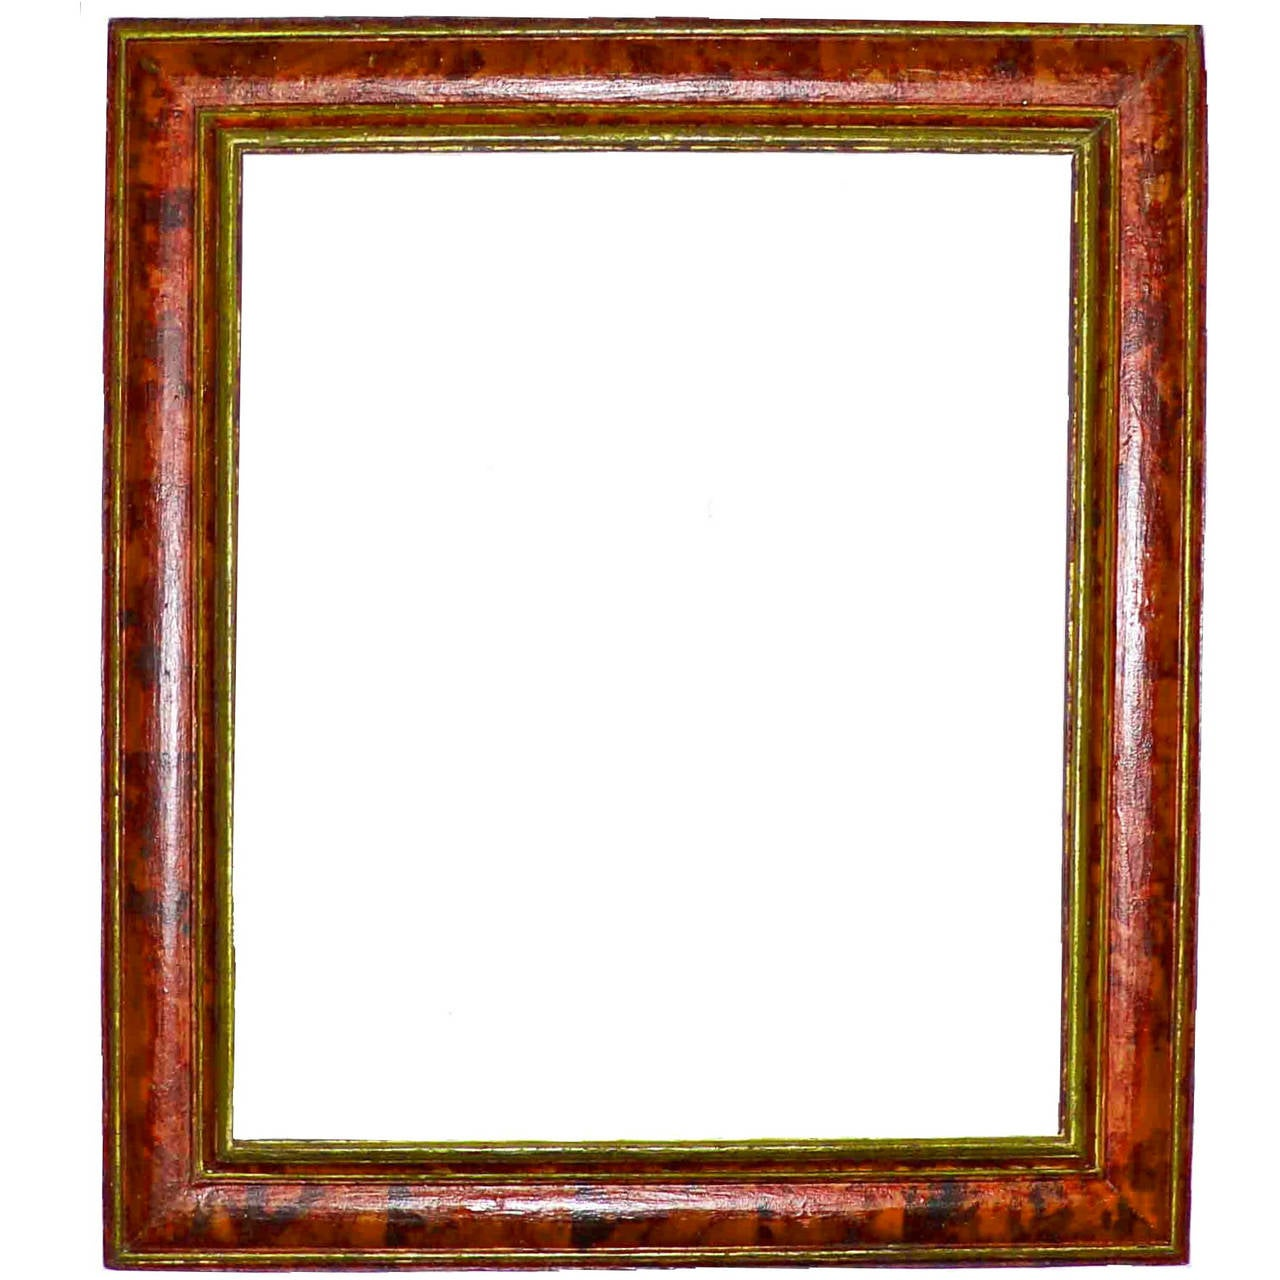 Faux Picture Frames On Walls : Spanish carved and faux tortoiseshell painted mirror frame